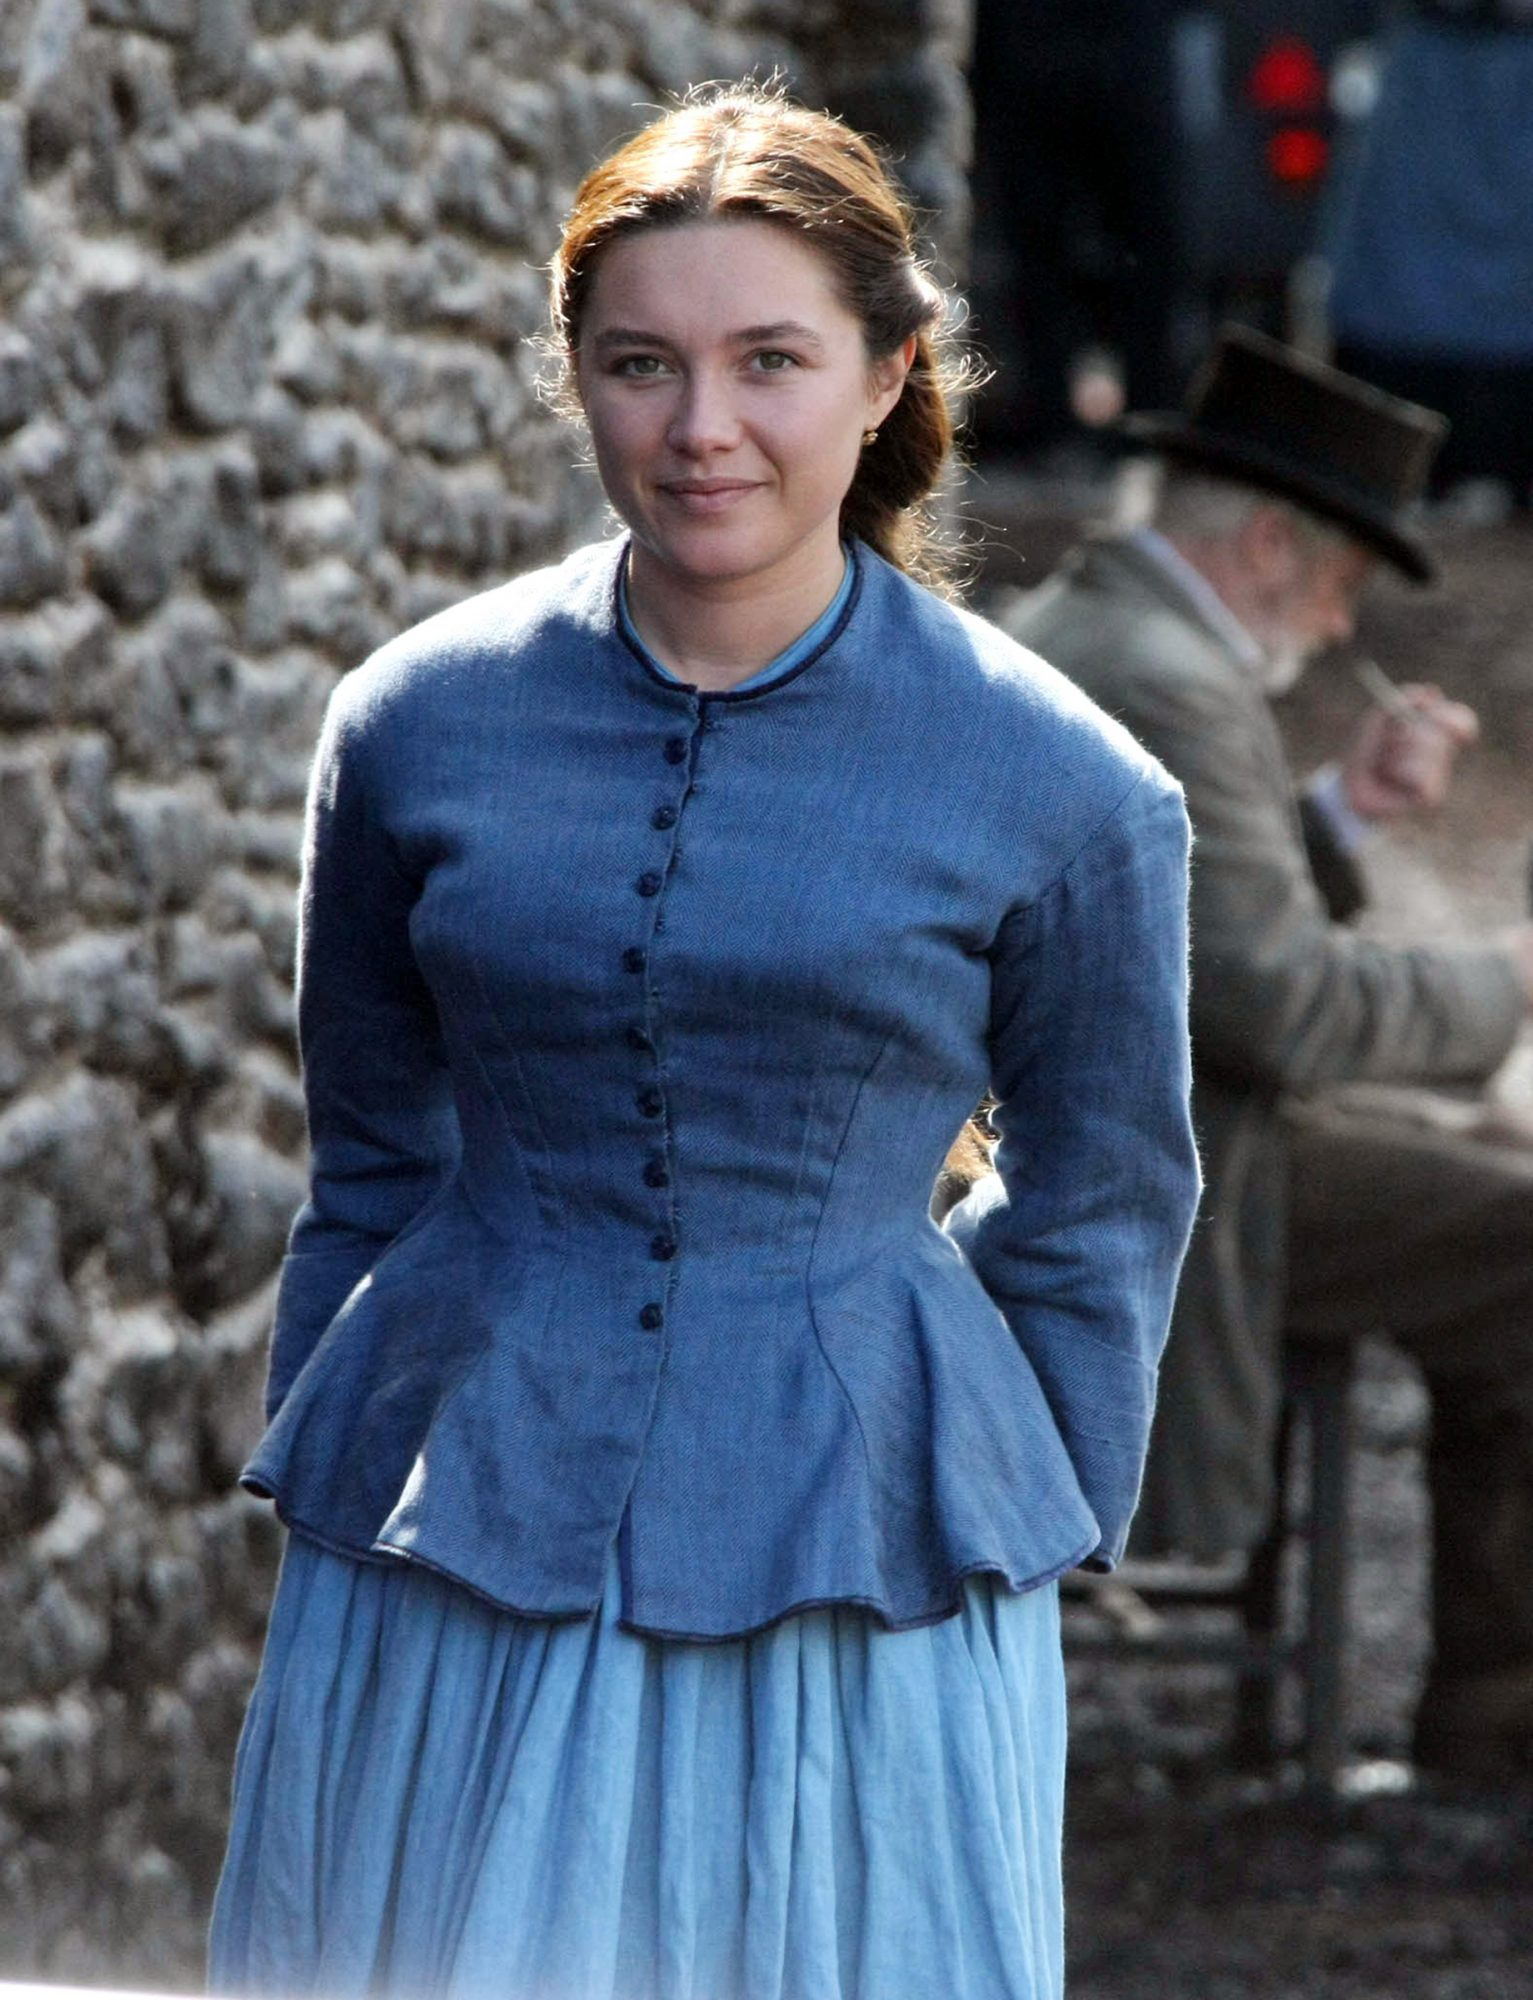 British actress Florence Pugh beams with delight whilst filming 'The Wonder' in Wicklow, Ireland.